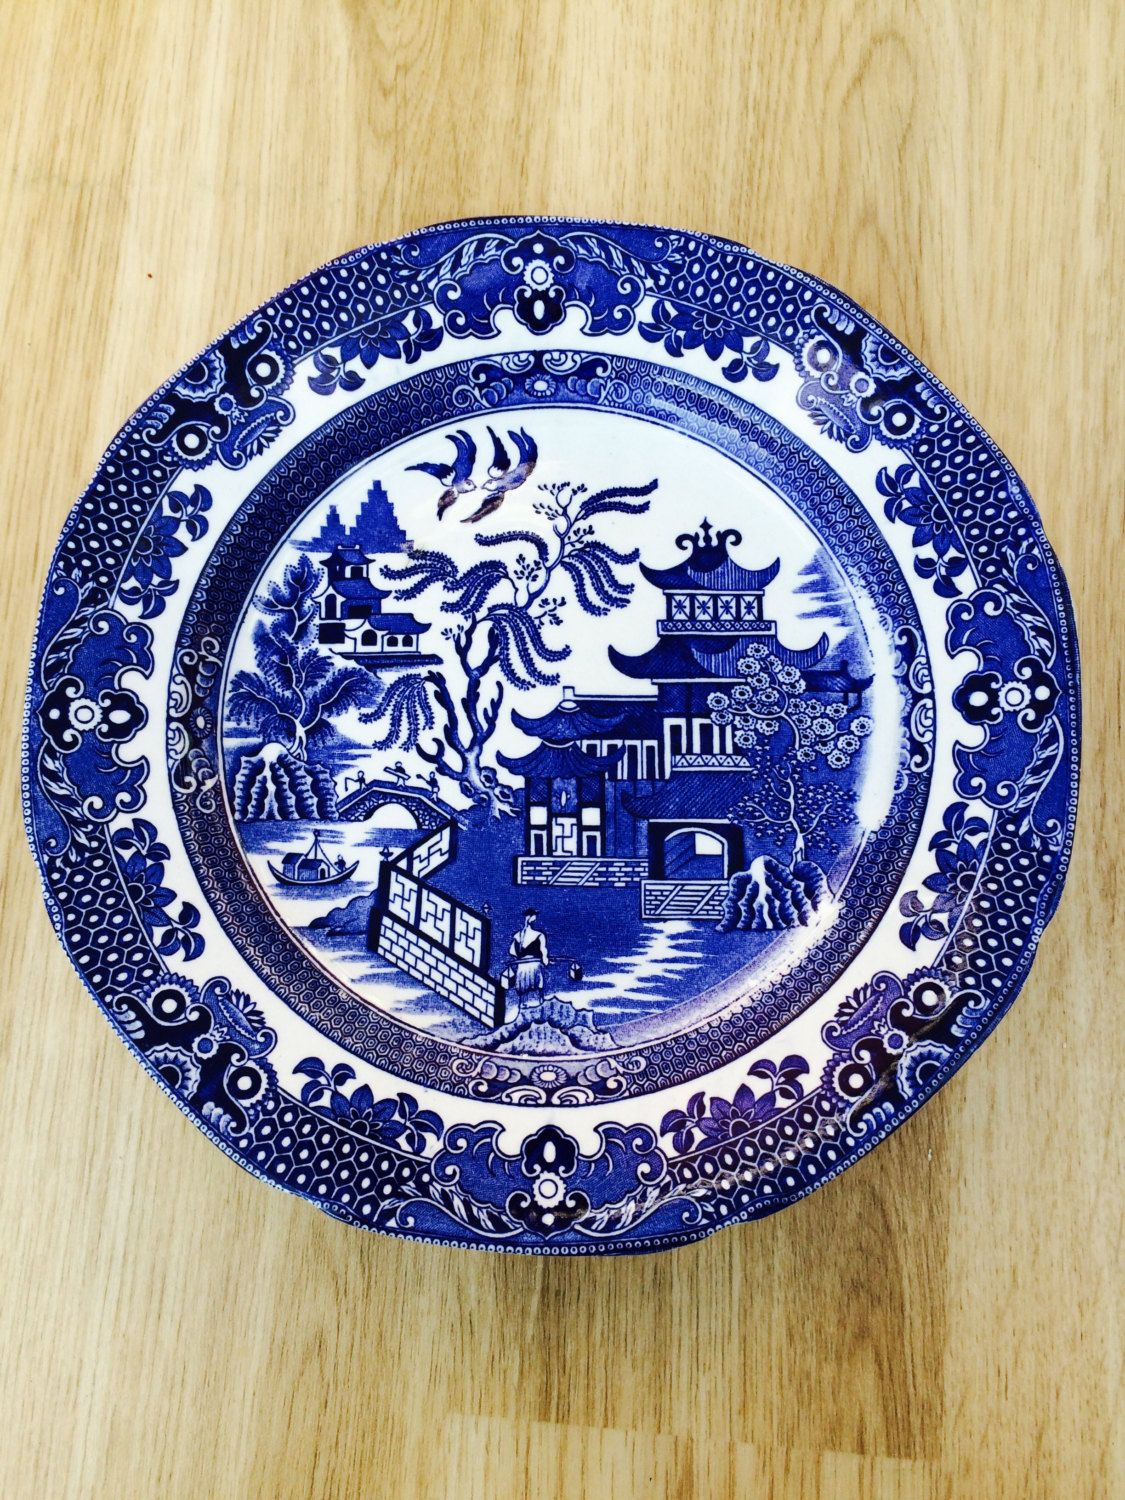 Vintage Burleigh Ware blue and white Willow pattern plate by VintageVinnieTrading on Etsy & Vintage Burleigh Ware blue and white Willow pattern plate by ...